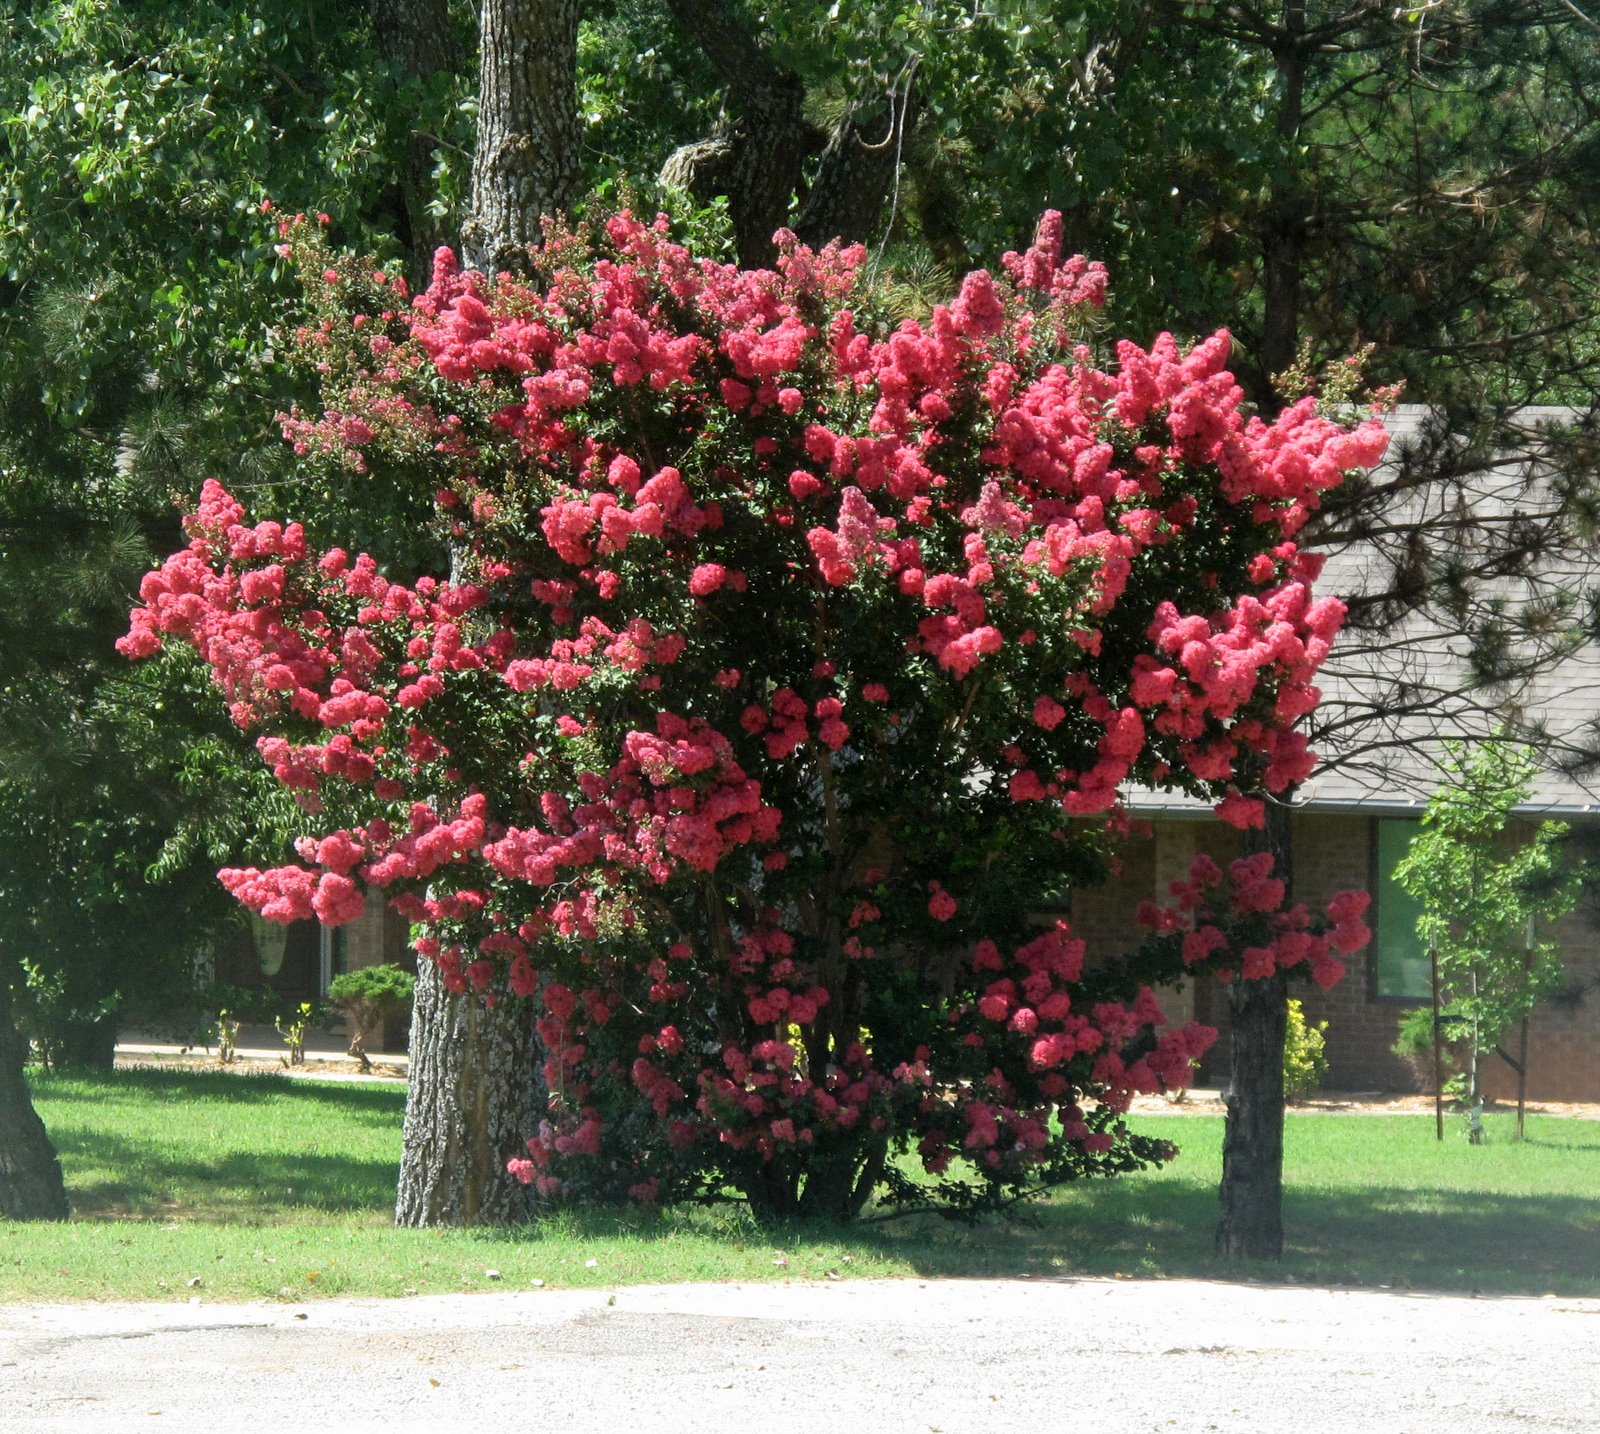 Pictures of crape myrtle Acoma White Crapemyrtle Tree - m